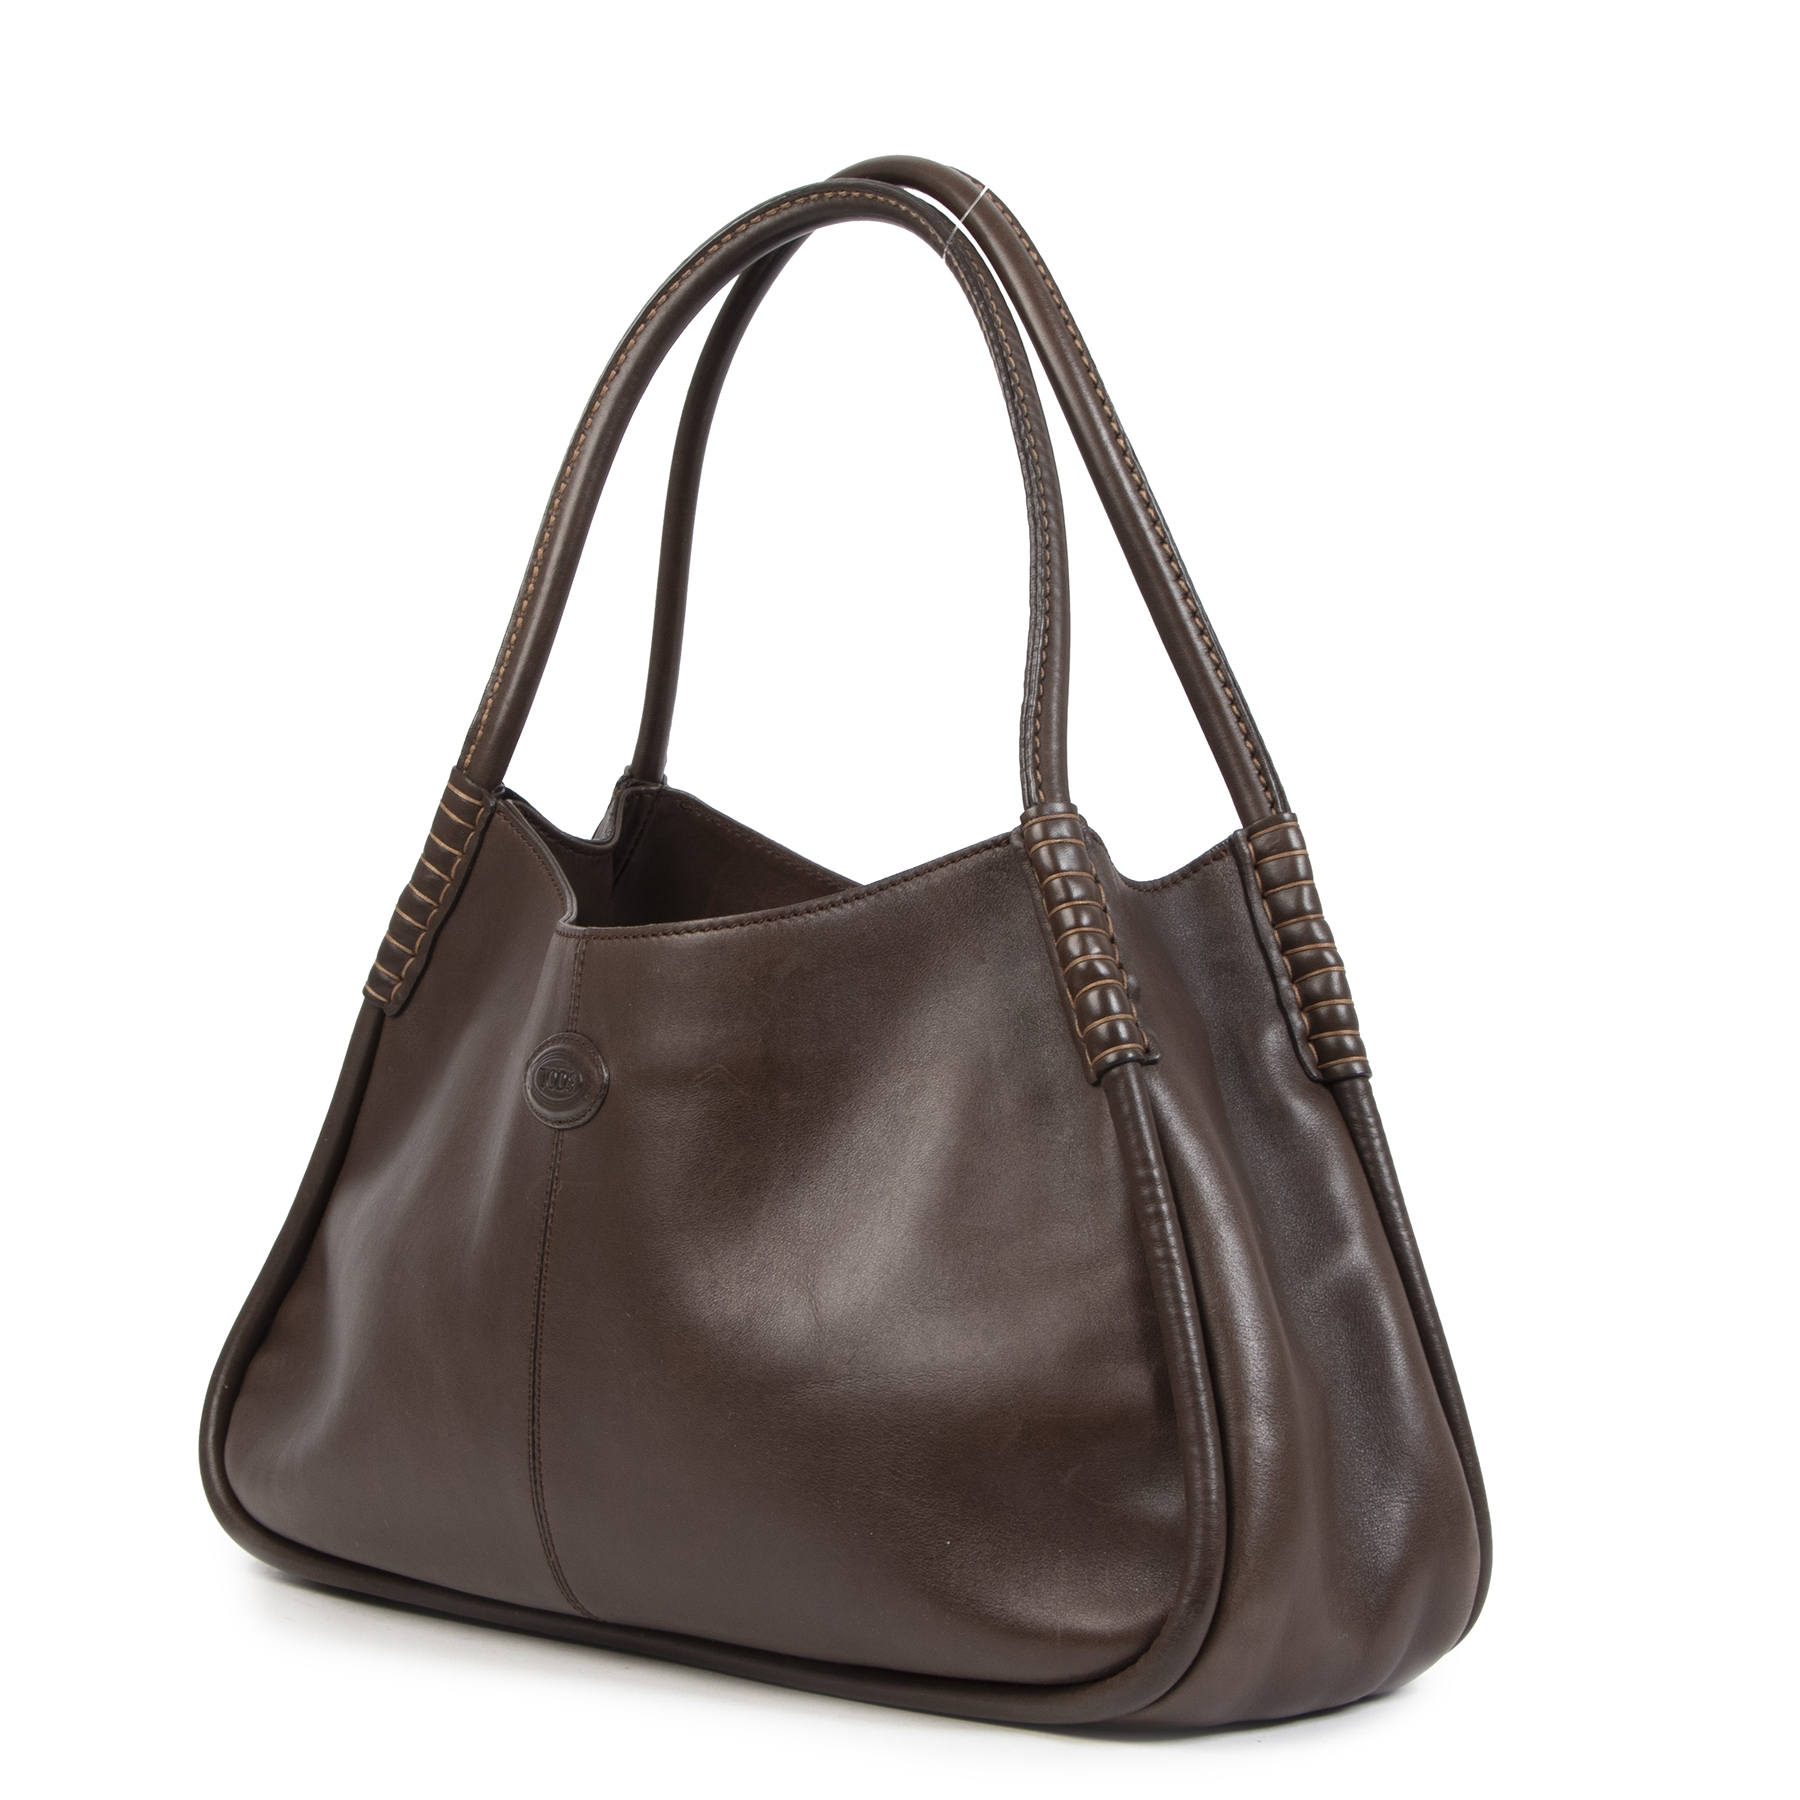 Authentique seconde-main vintage Tod's Dark Brown Leather Shoulder Bag achète en ligne webshop LabelLOV